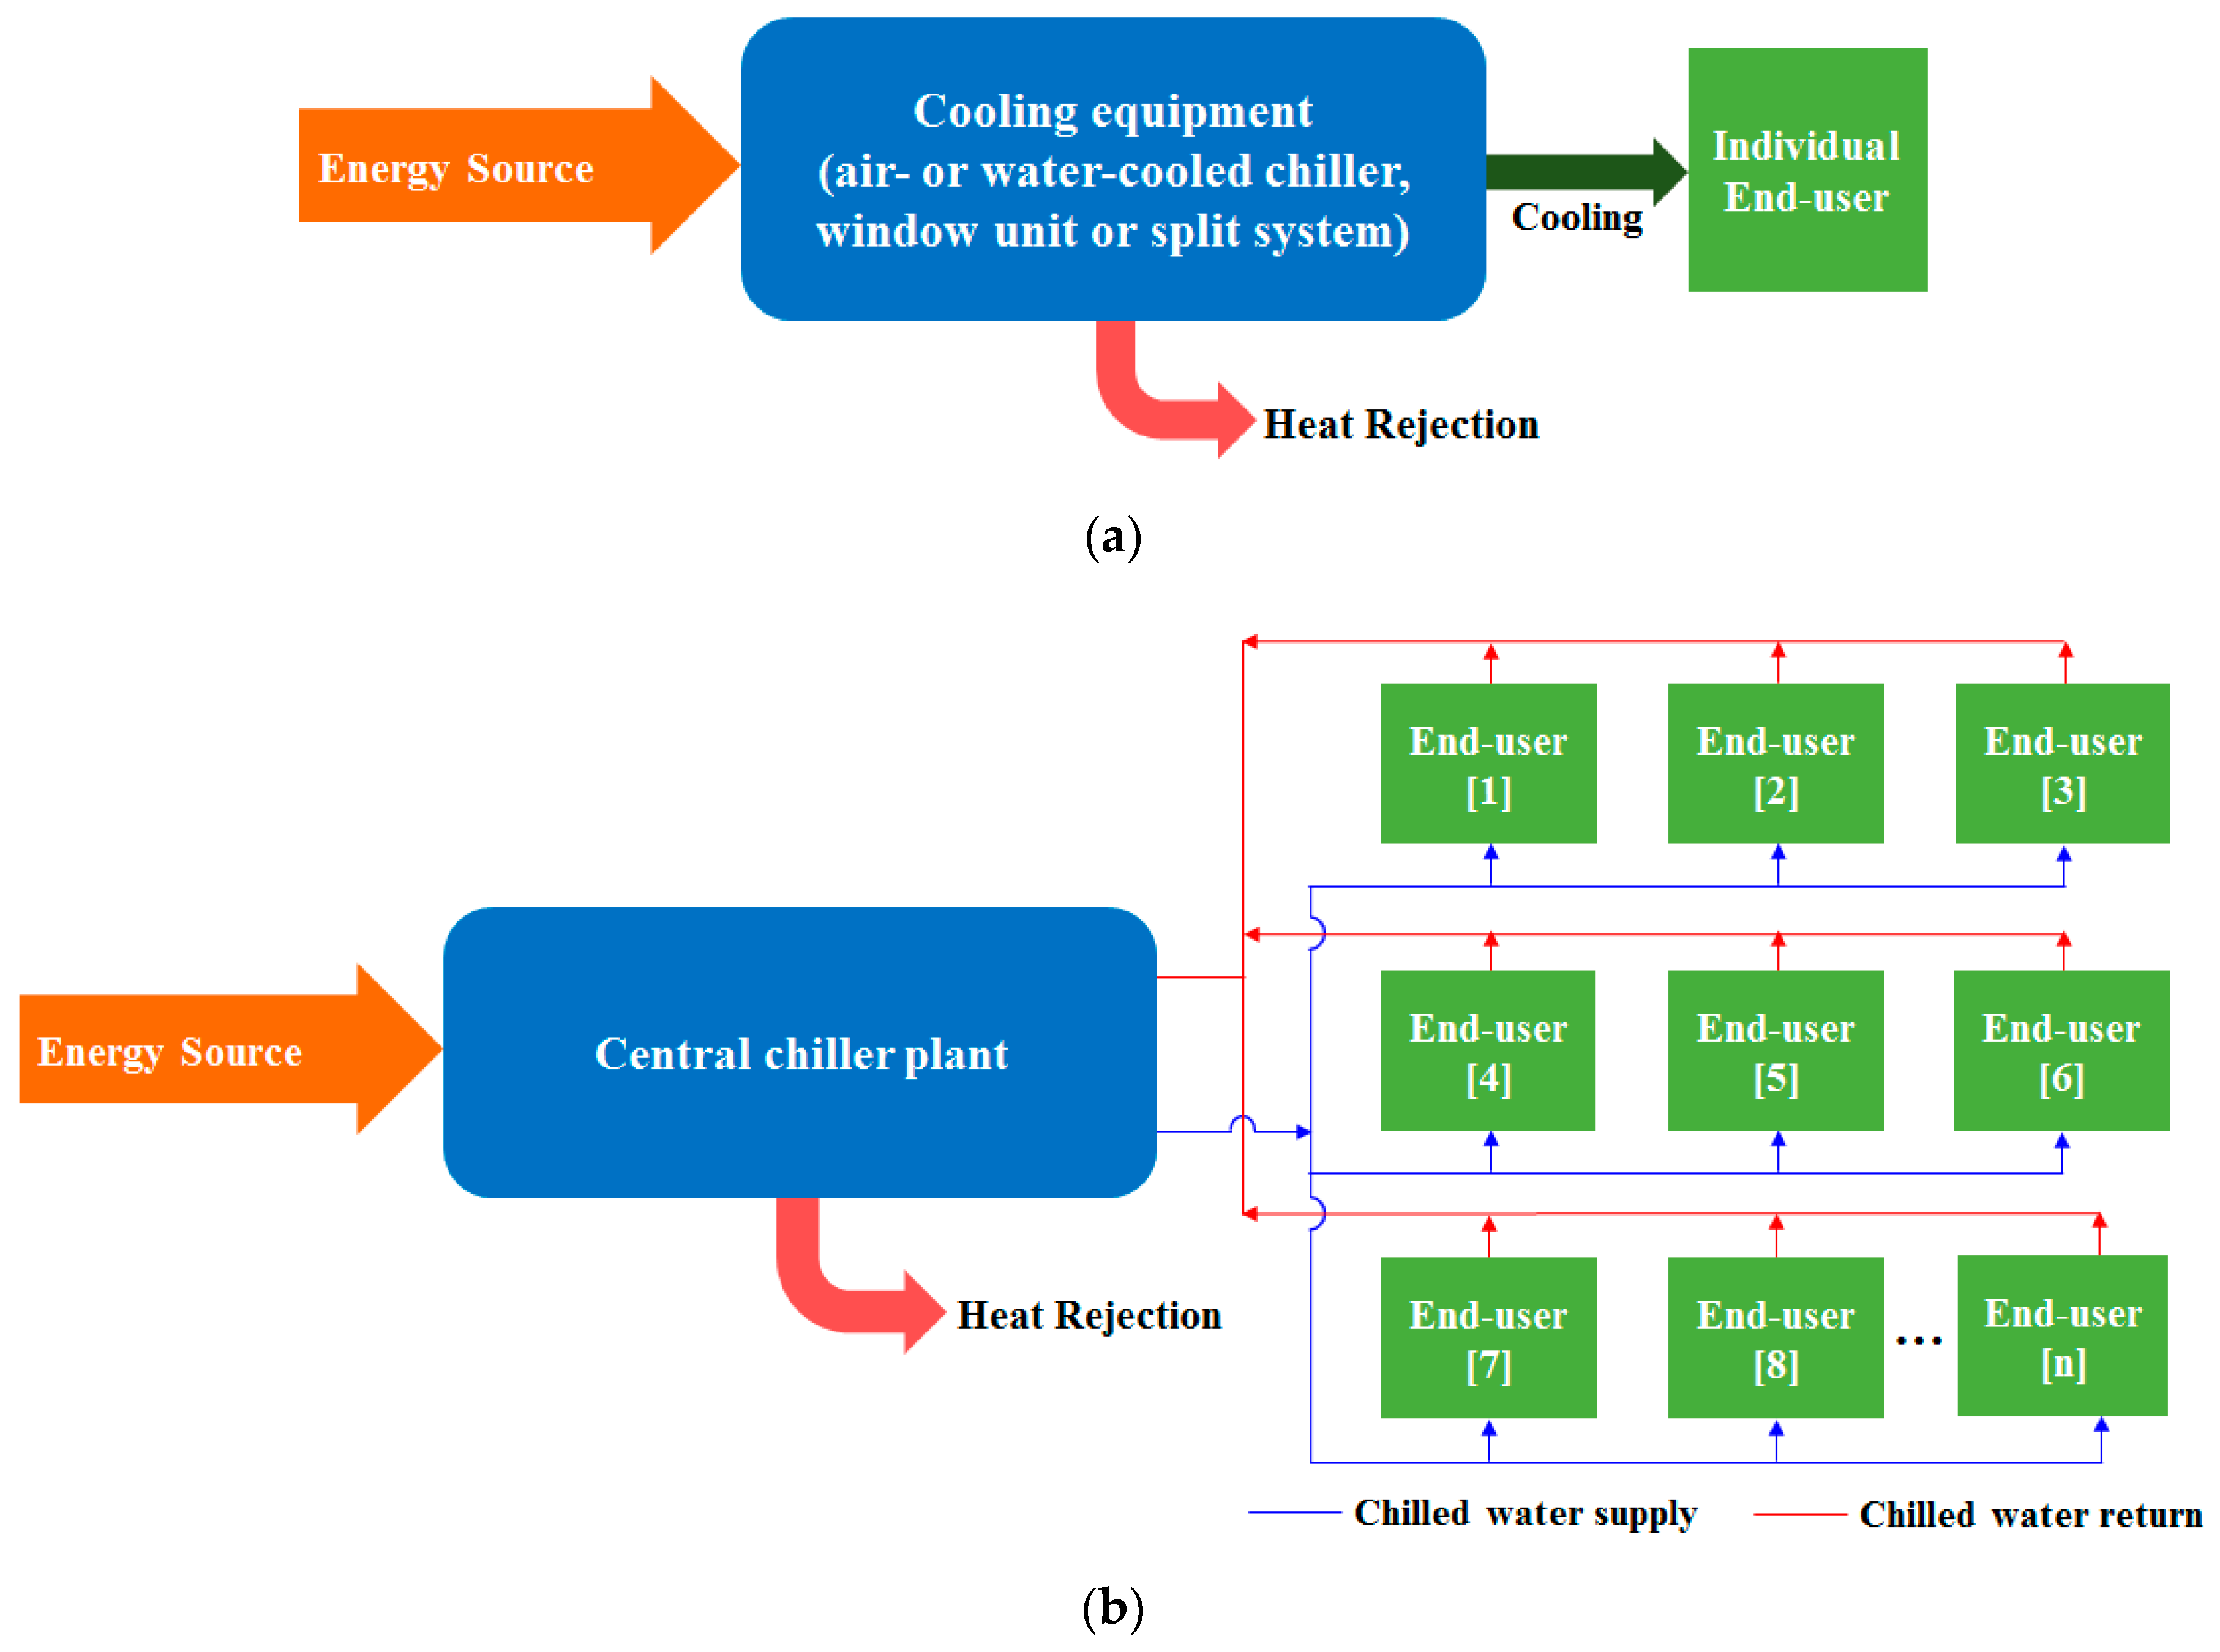 Energies Free Full Text Sustainable District Cooling Systems Status Challenges And Future Opportunities With Emphasis On Cooling Dominated Regions Html